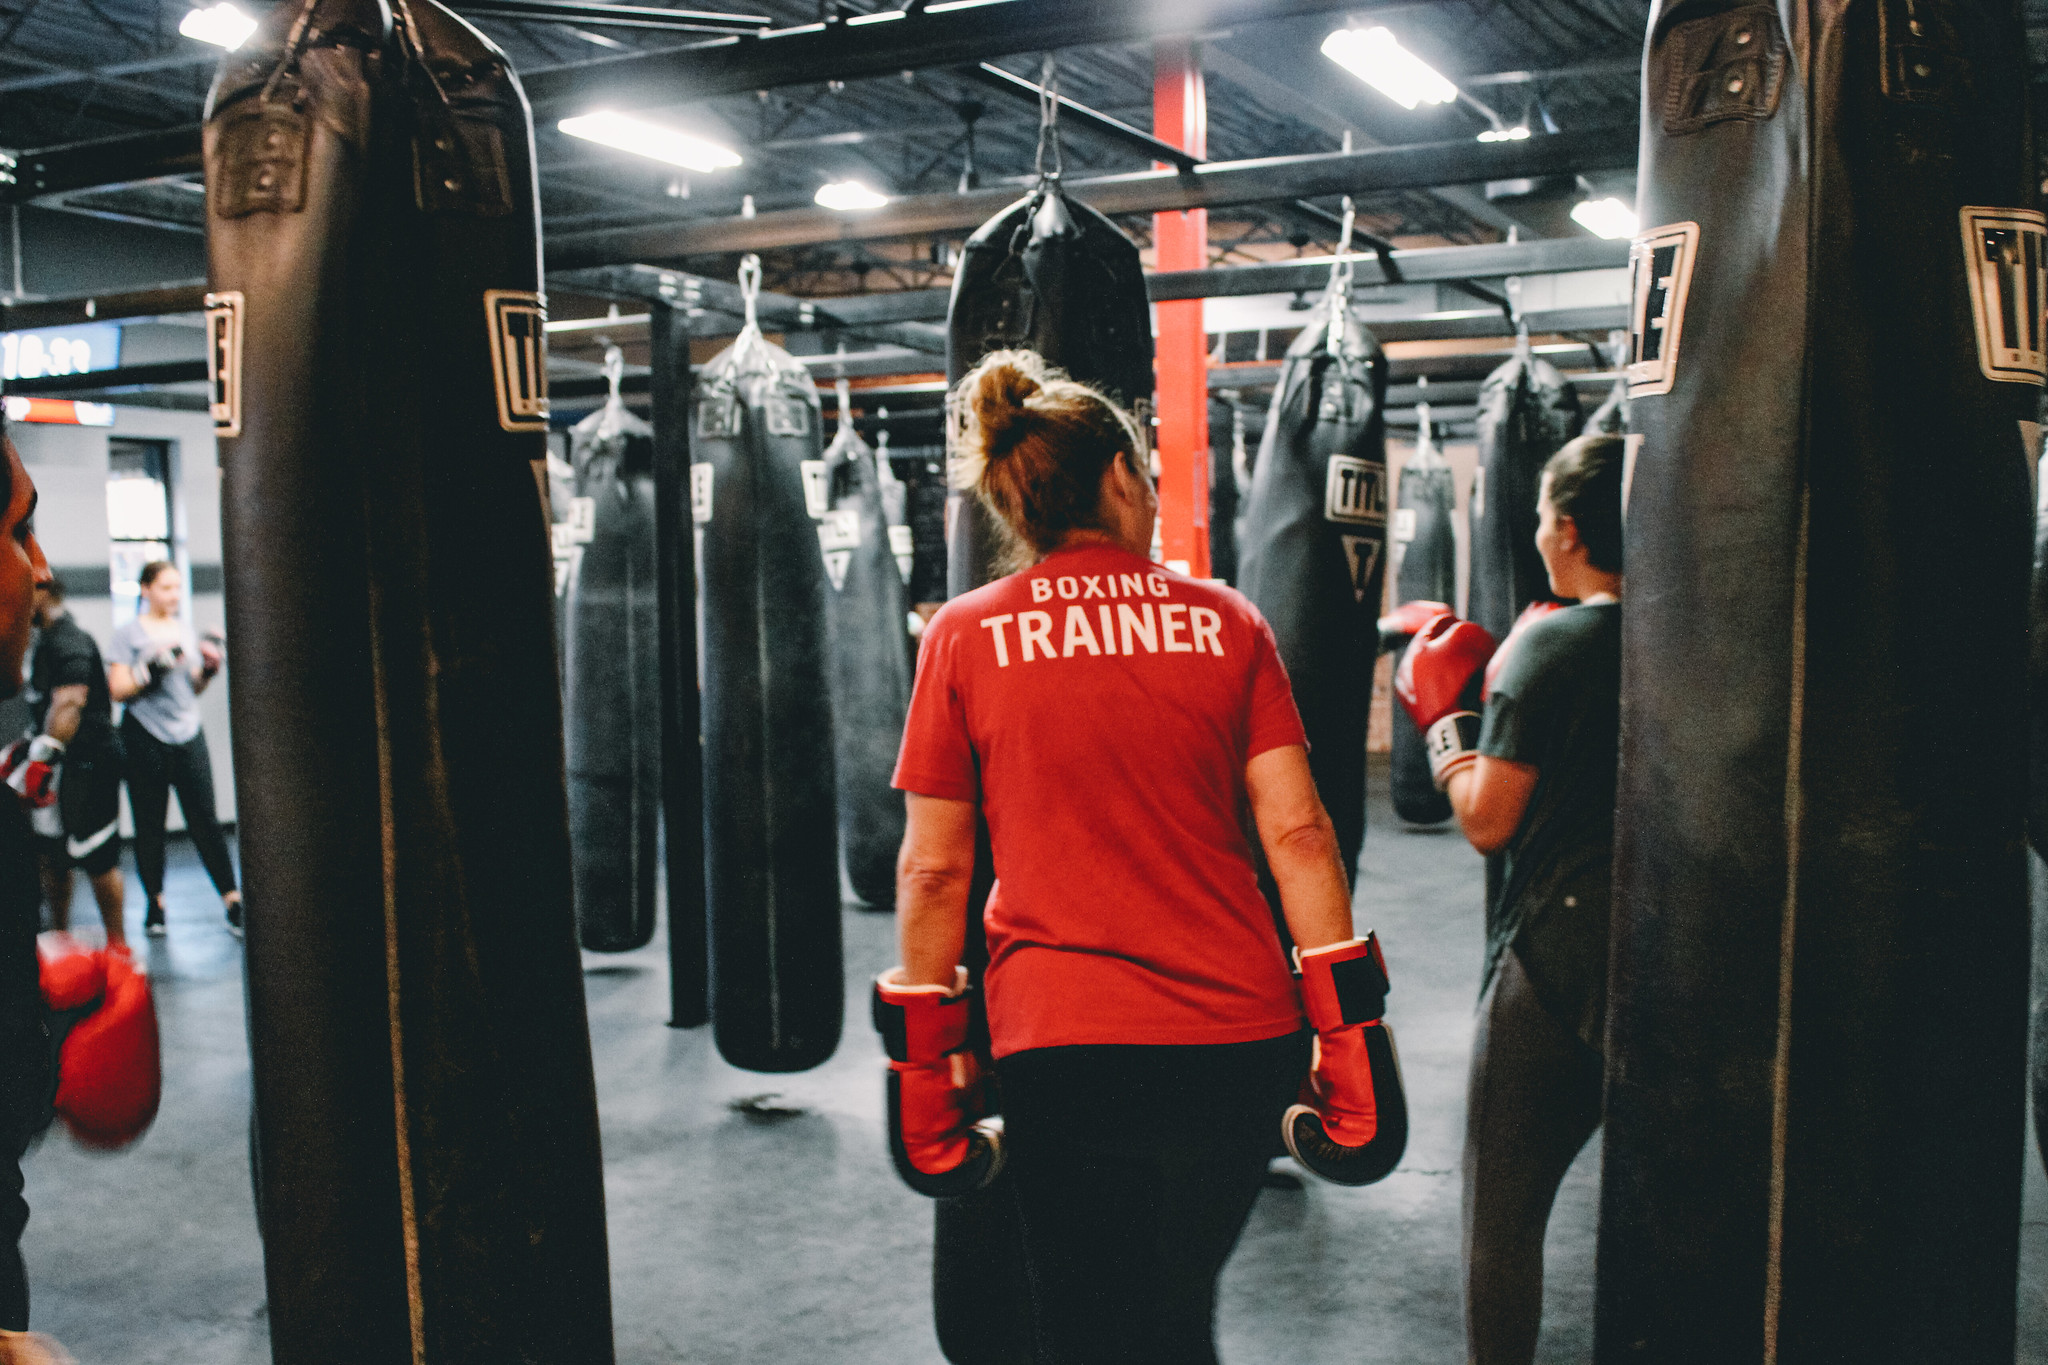 YP: Boxing & Bonding with TITLE Boxing club